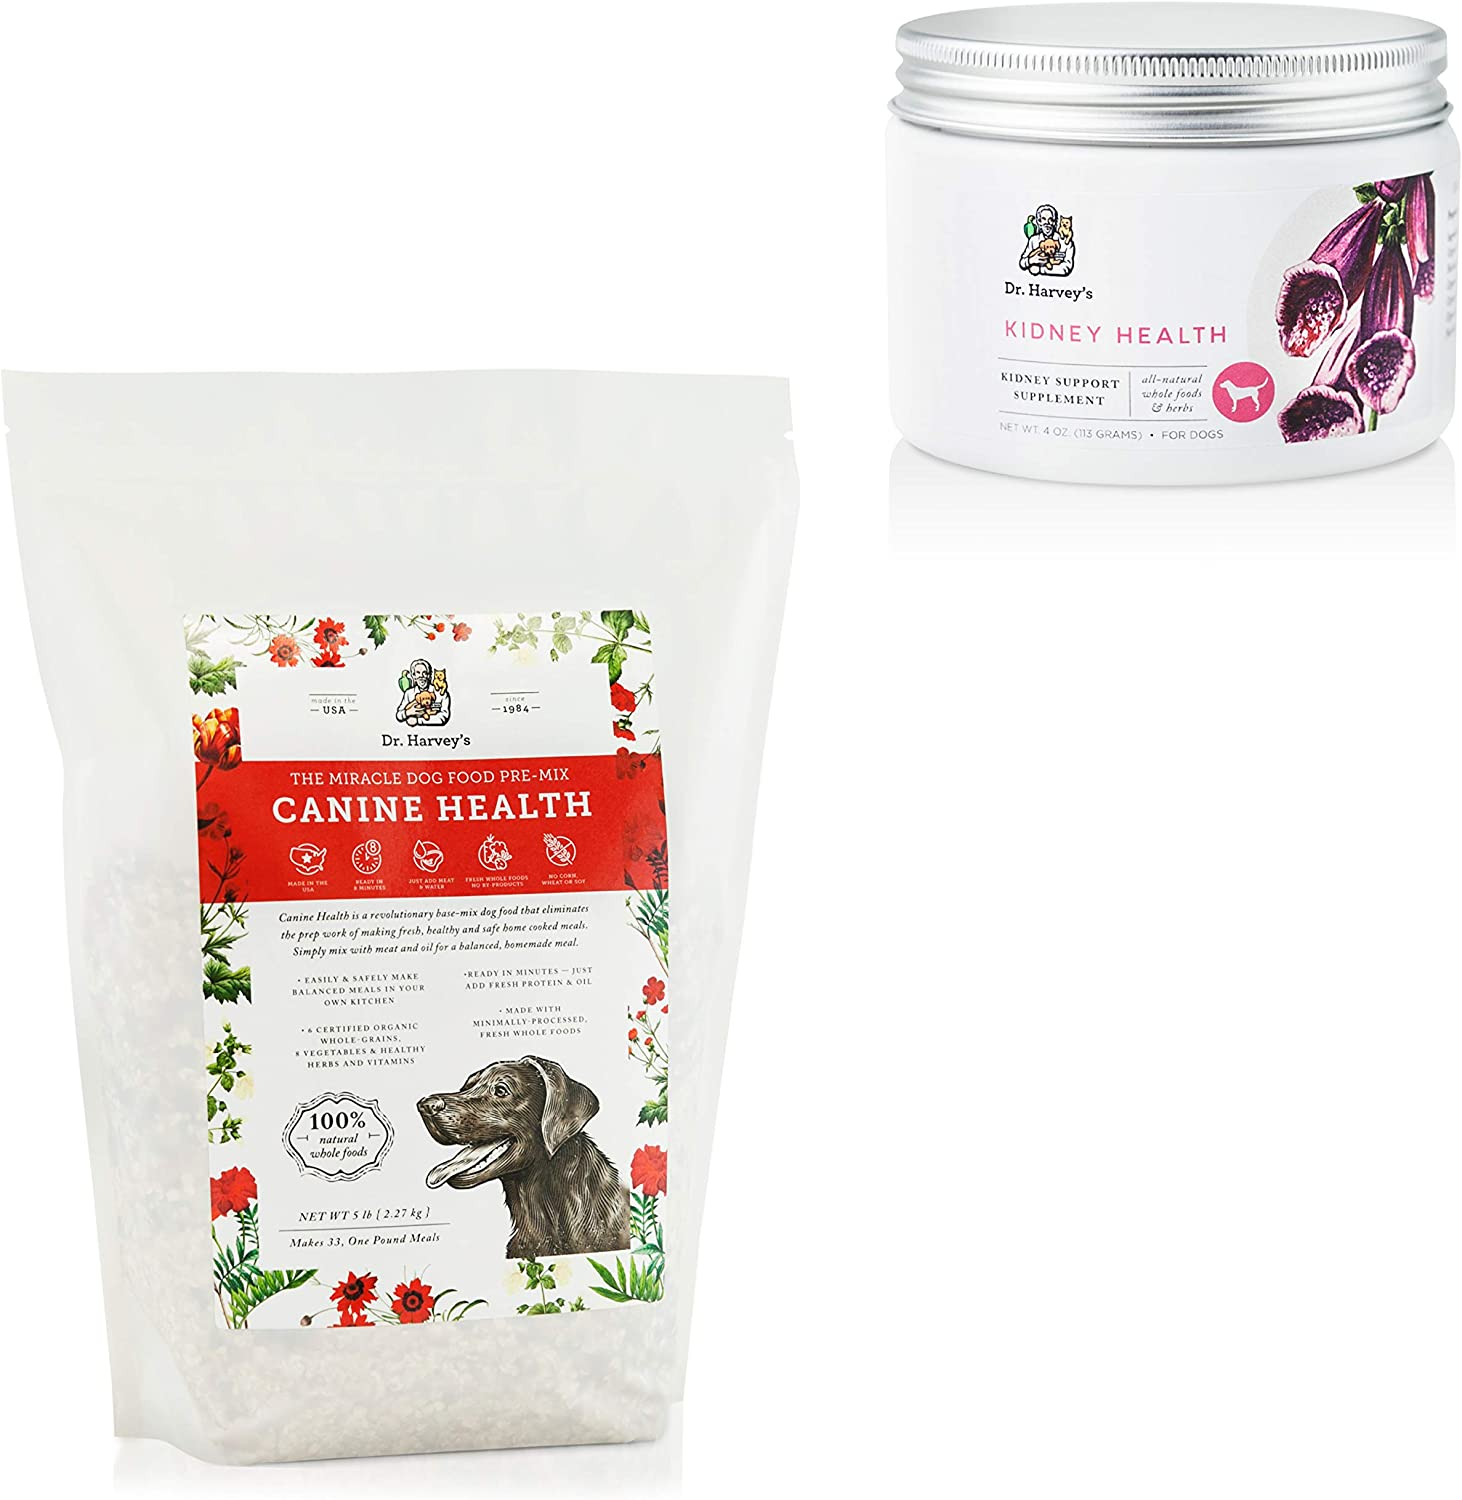 Dr. Harvey's Canine Health 5lb Base Mix for Dogs Kidney Health Whole Food Supplement for Dogs